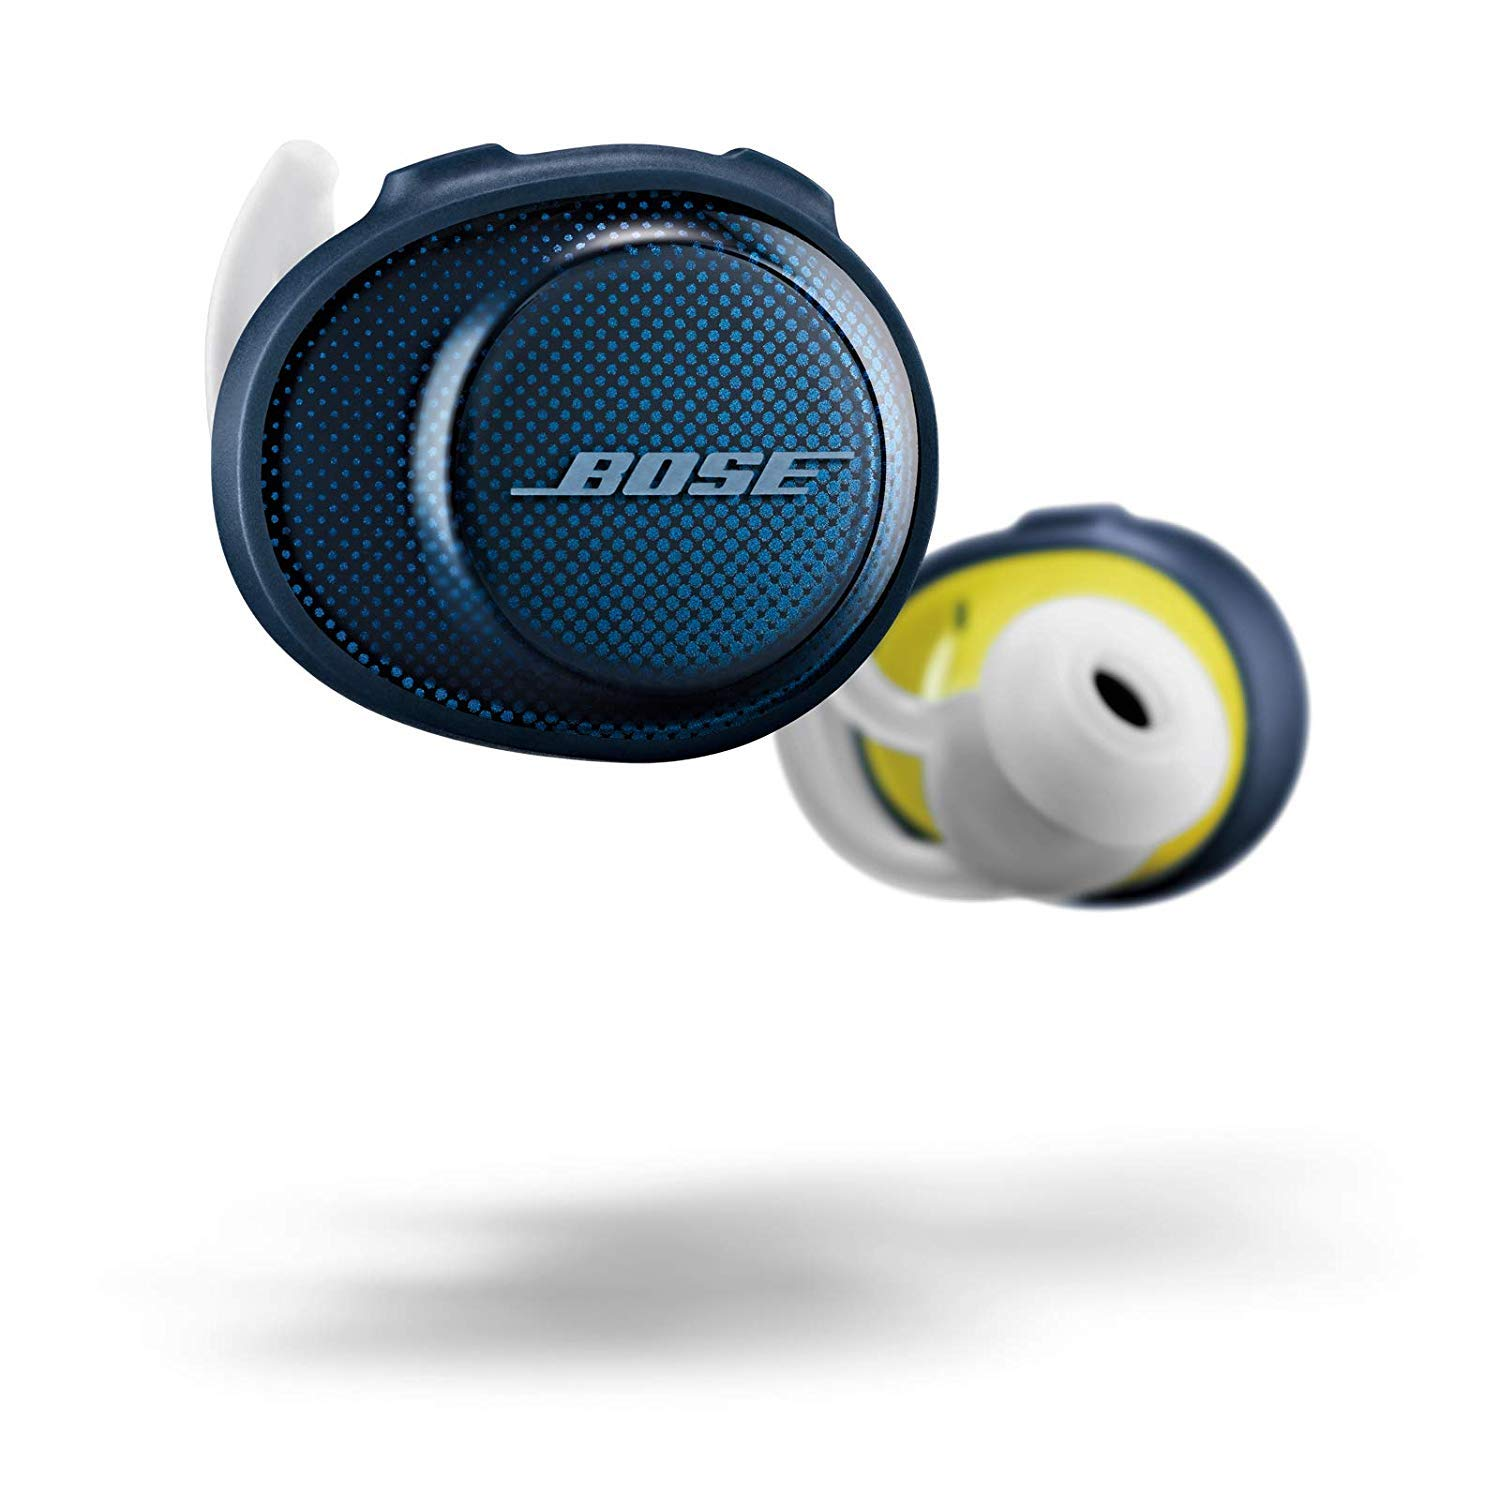 Amazon Com Bose Soundsport Free True Wireless Earbuds Sweatproof Bluetooth Headphones For Workouts And Sports Midnight Blue Citron Electronics